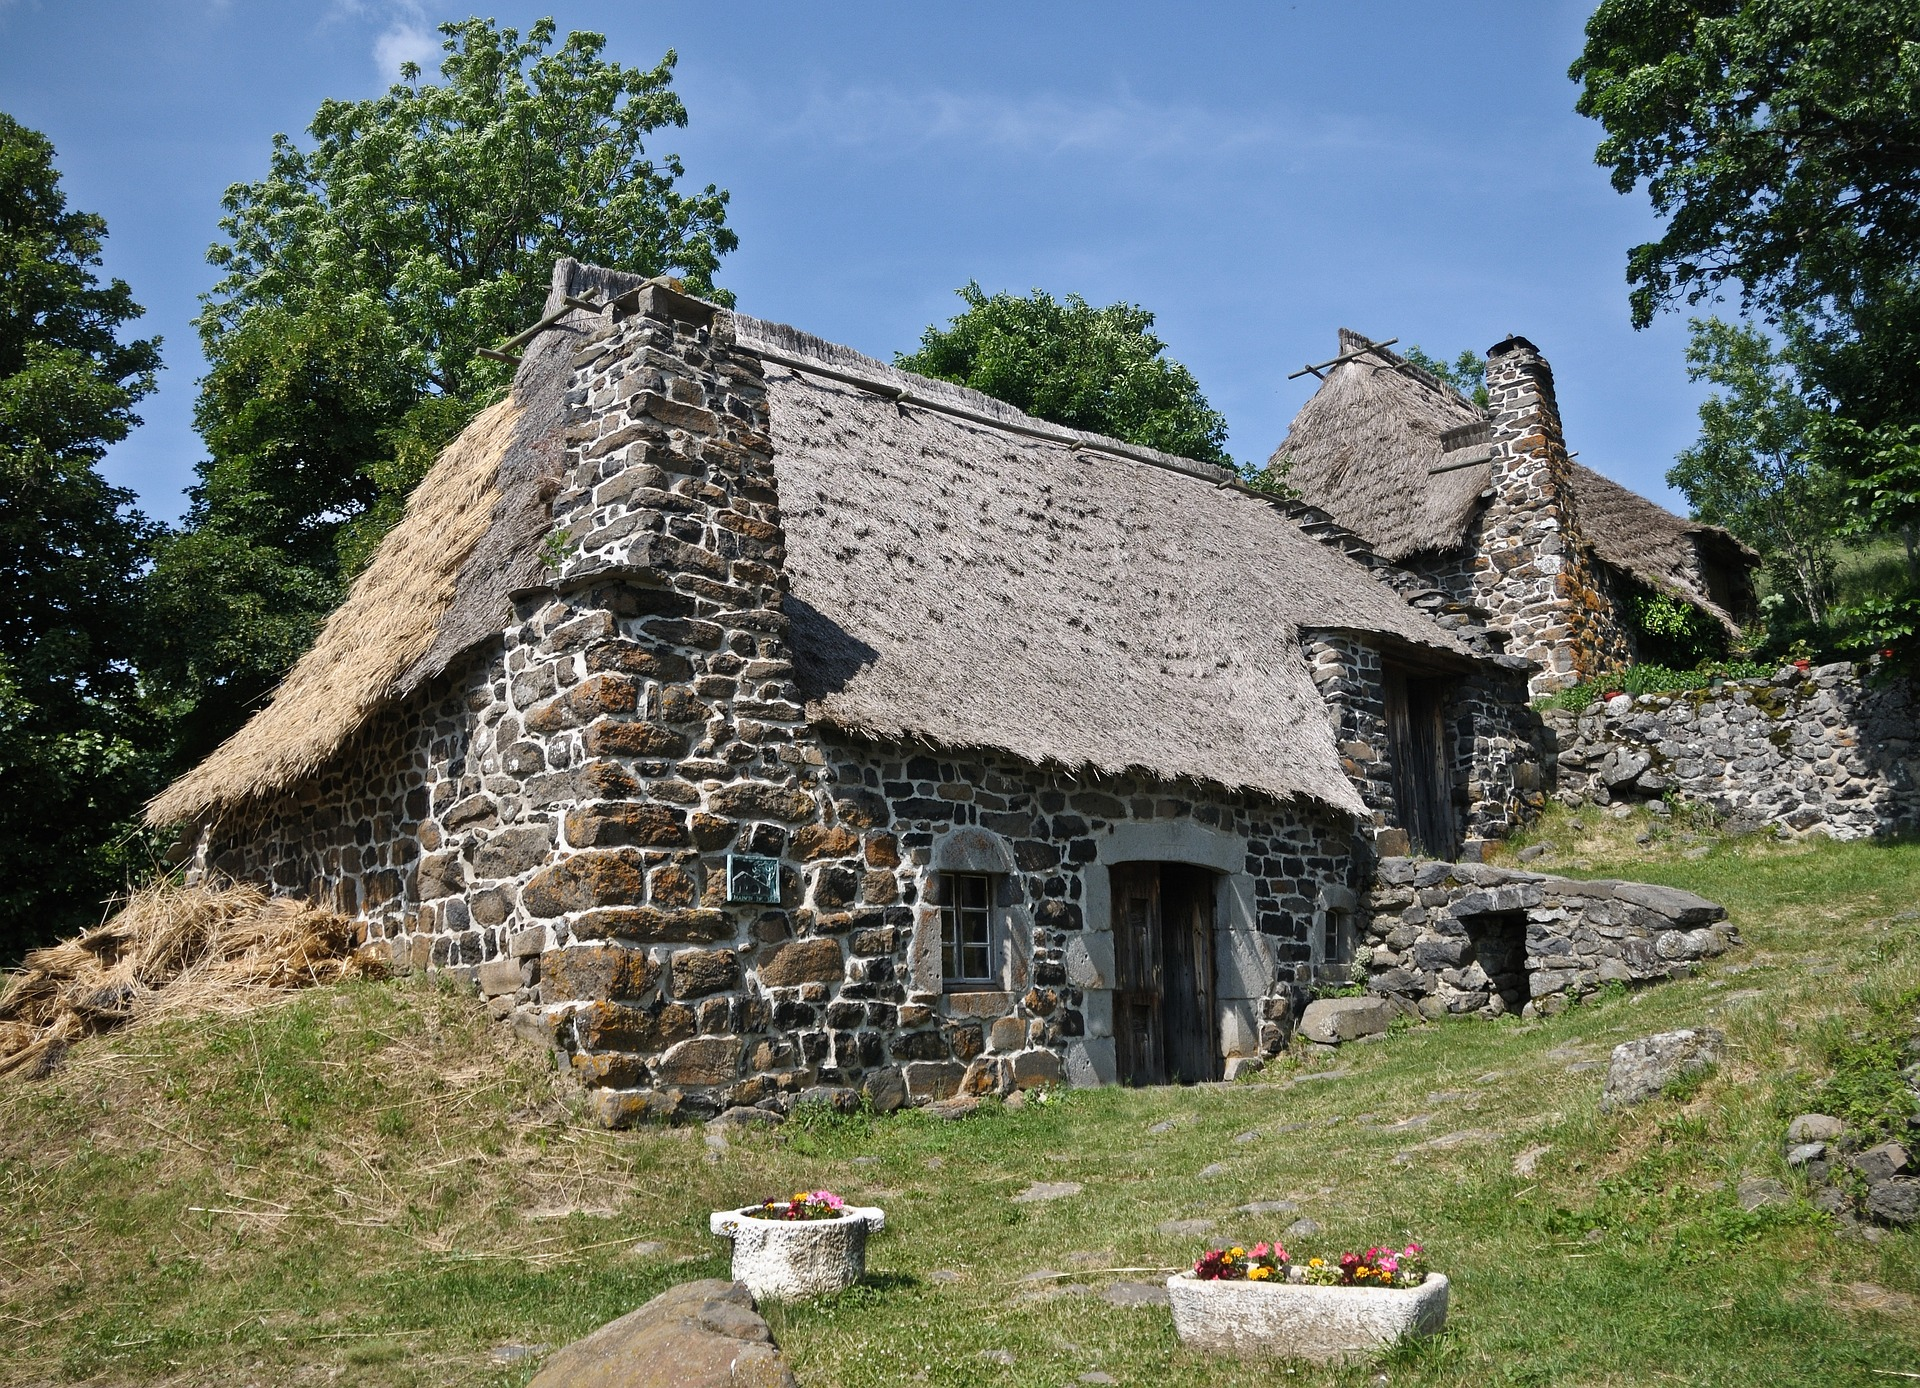 Stone-rustic houses